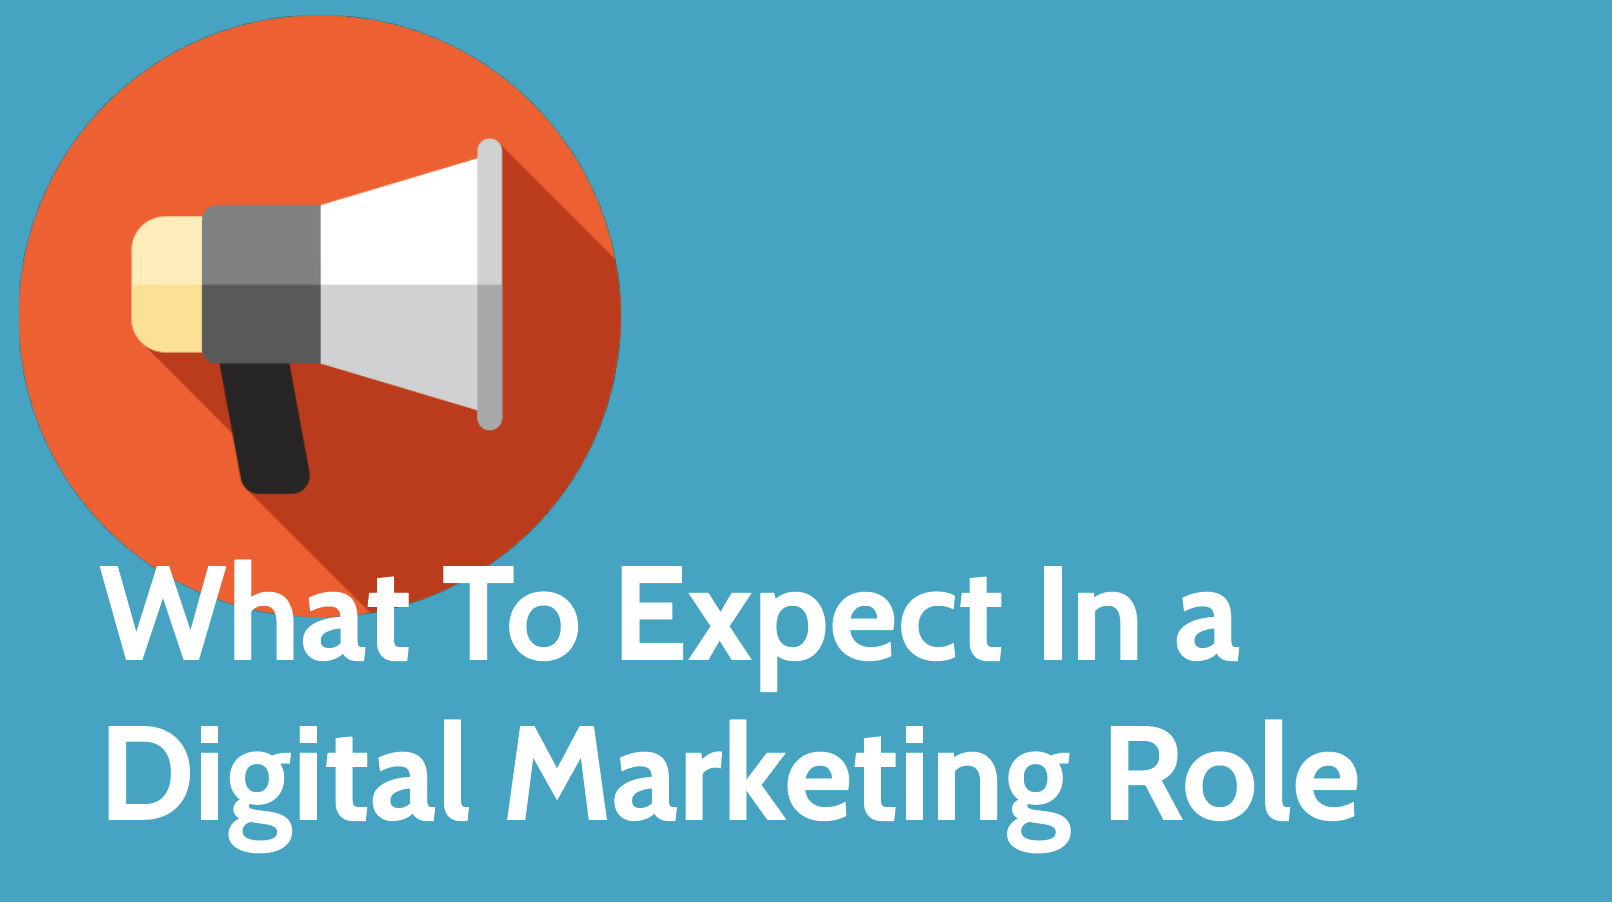 What To Expect In a Digital Marketing Role